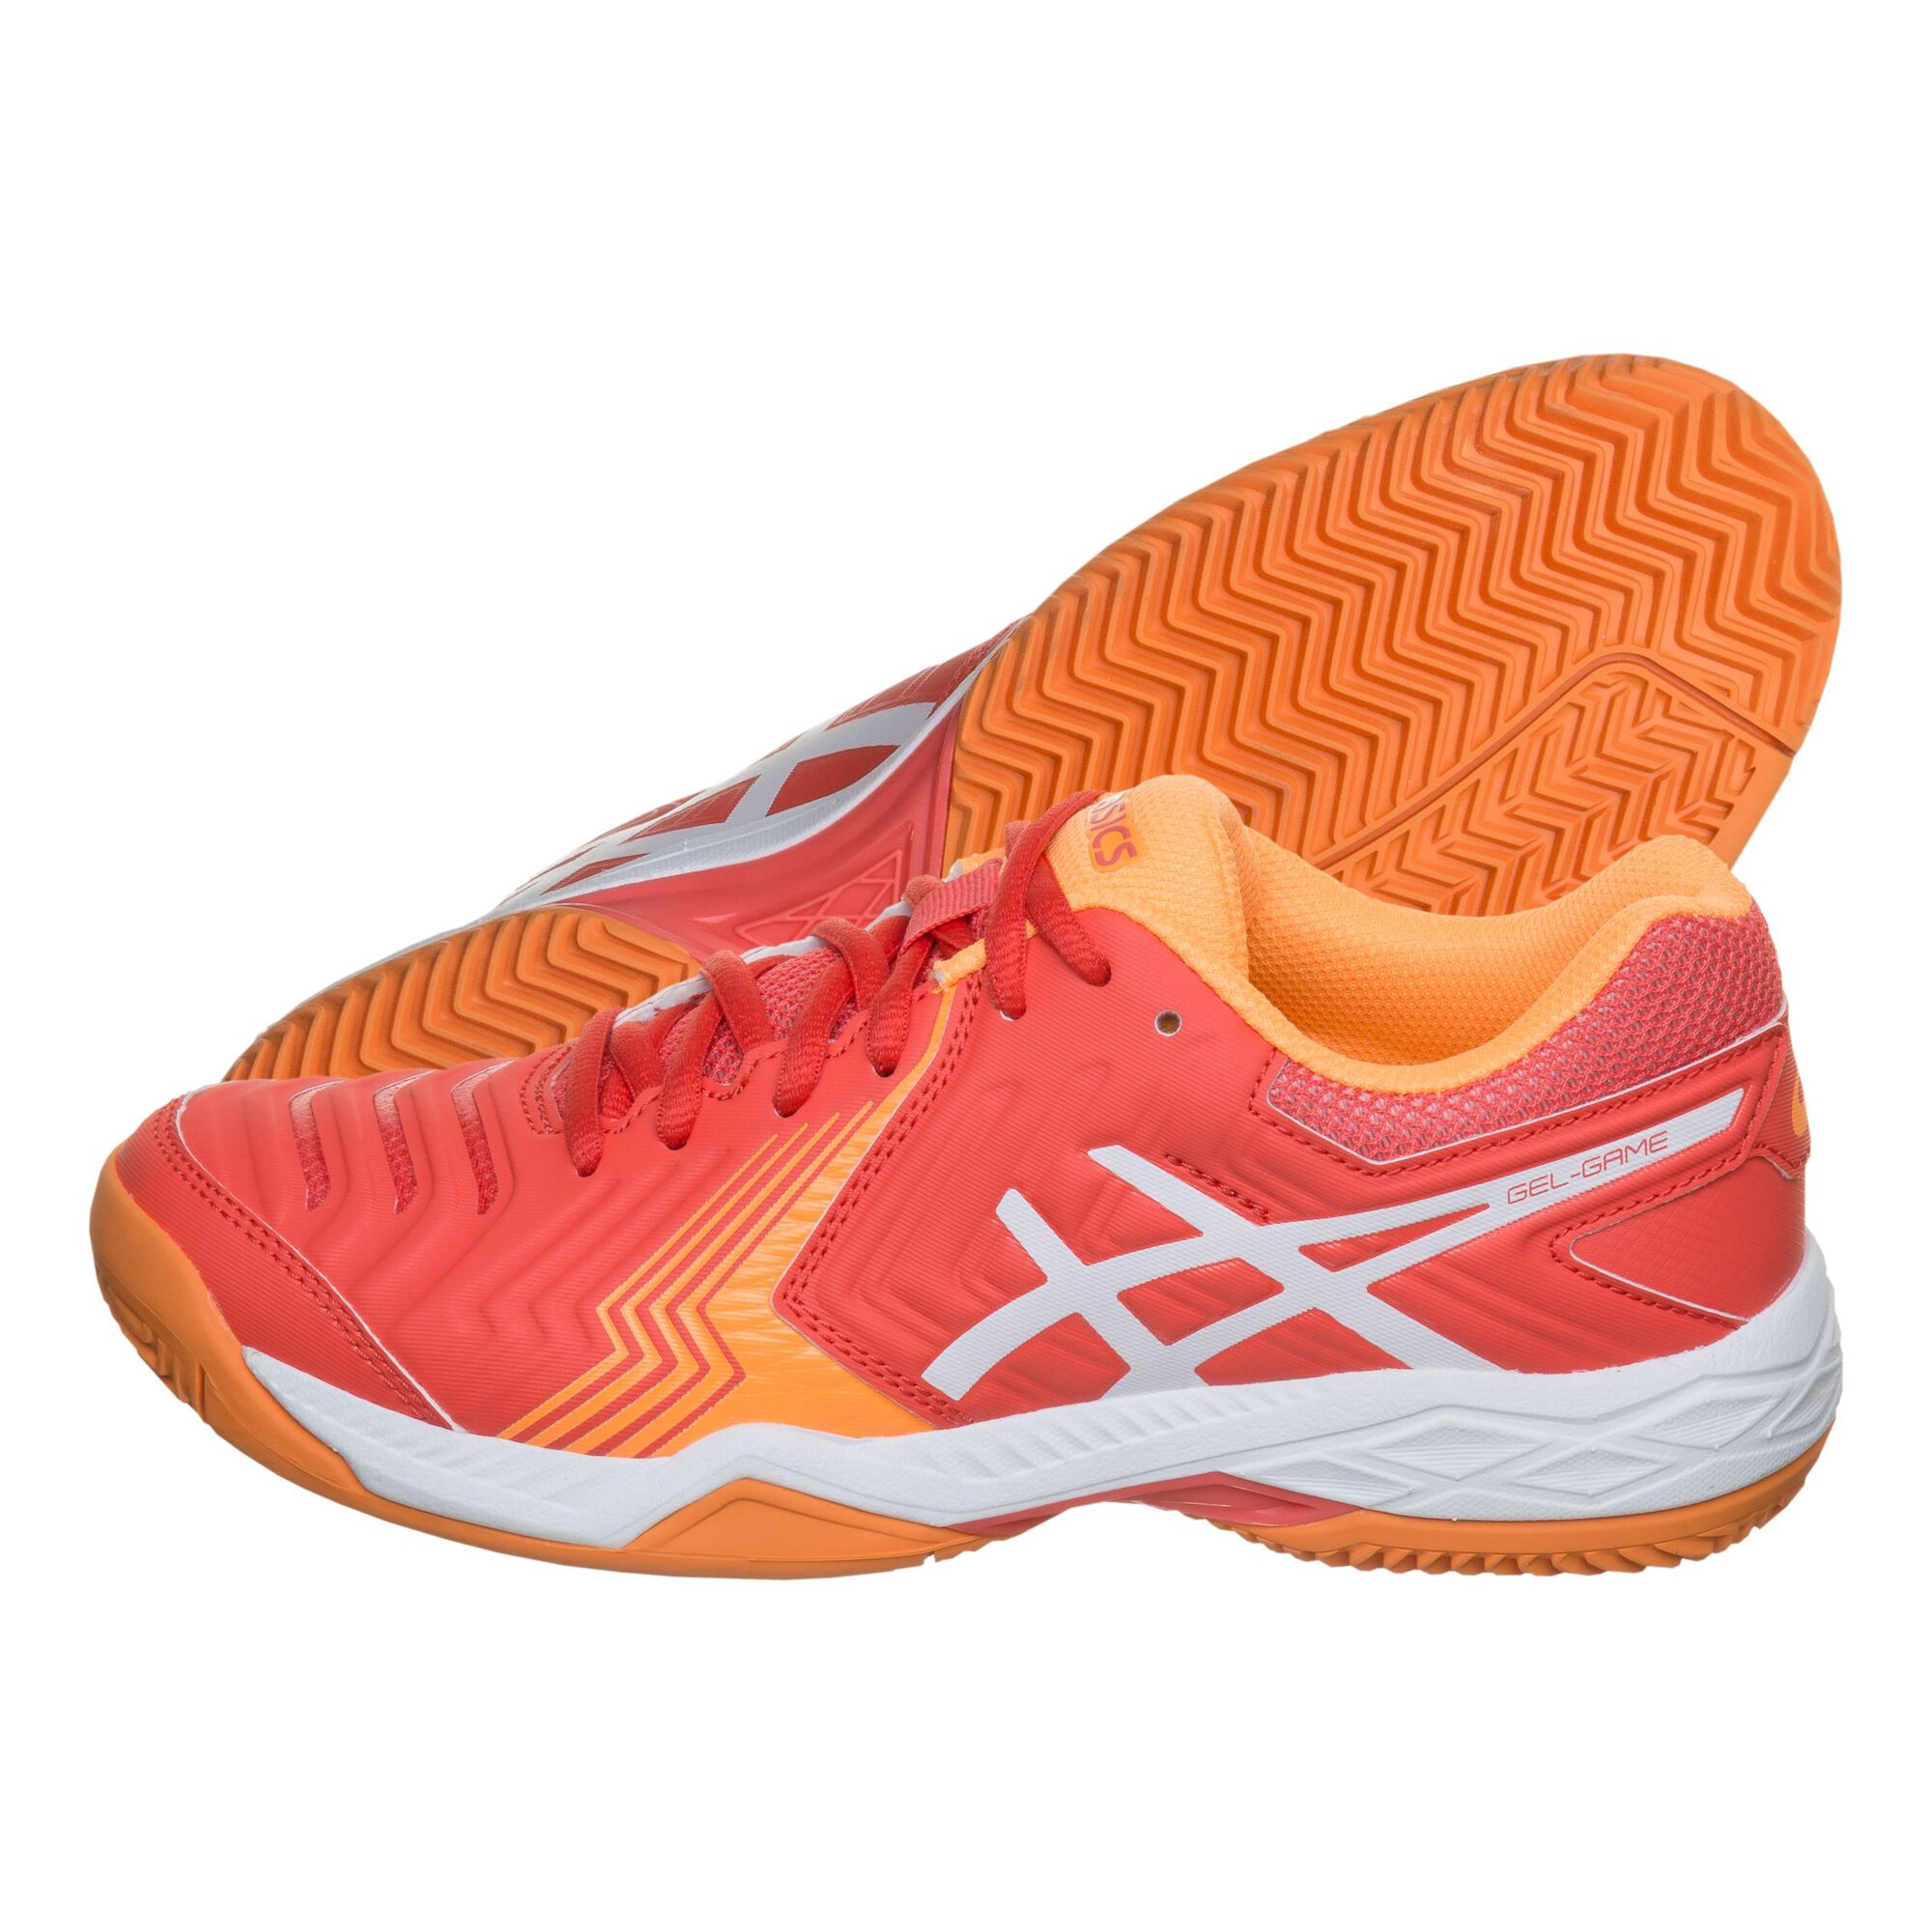 b16a1c0e ... Asics · Asics · Asics · Asics · Asics · Asics. Gel-Game 6 Clay ...